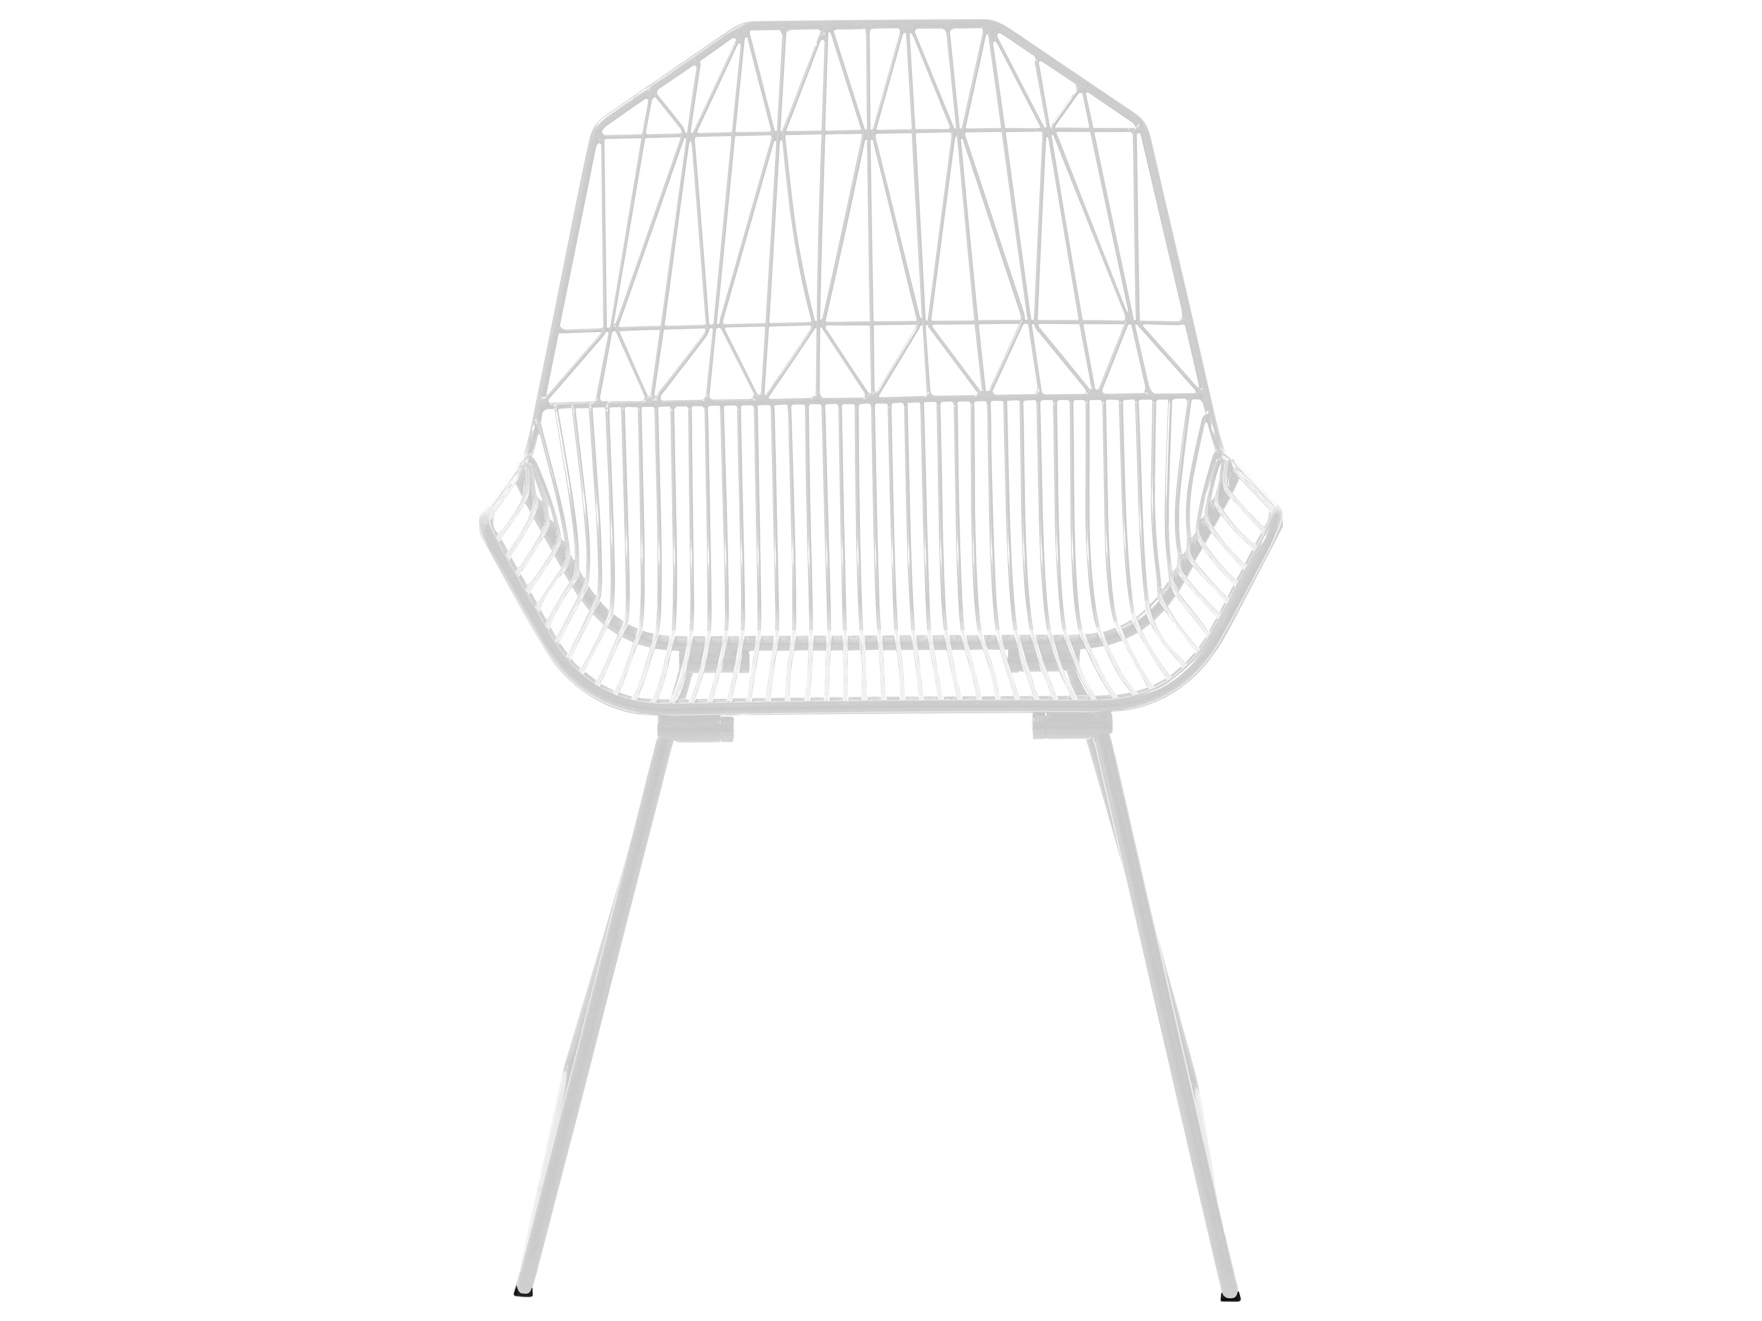 Bend Goods Outdoor Farmhouse White Metal Lounge Chair